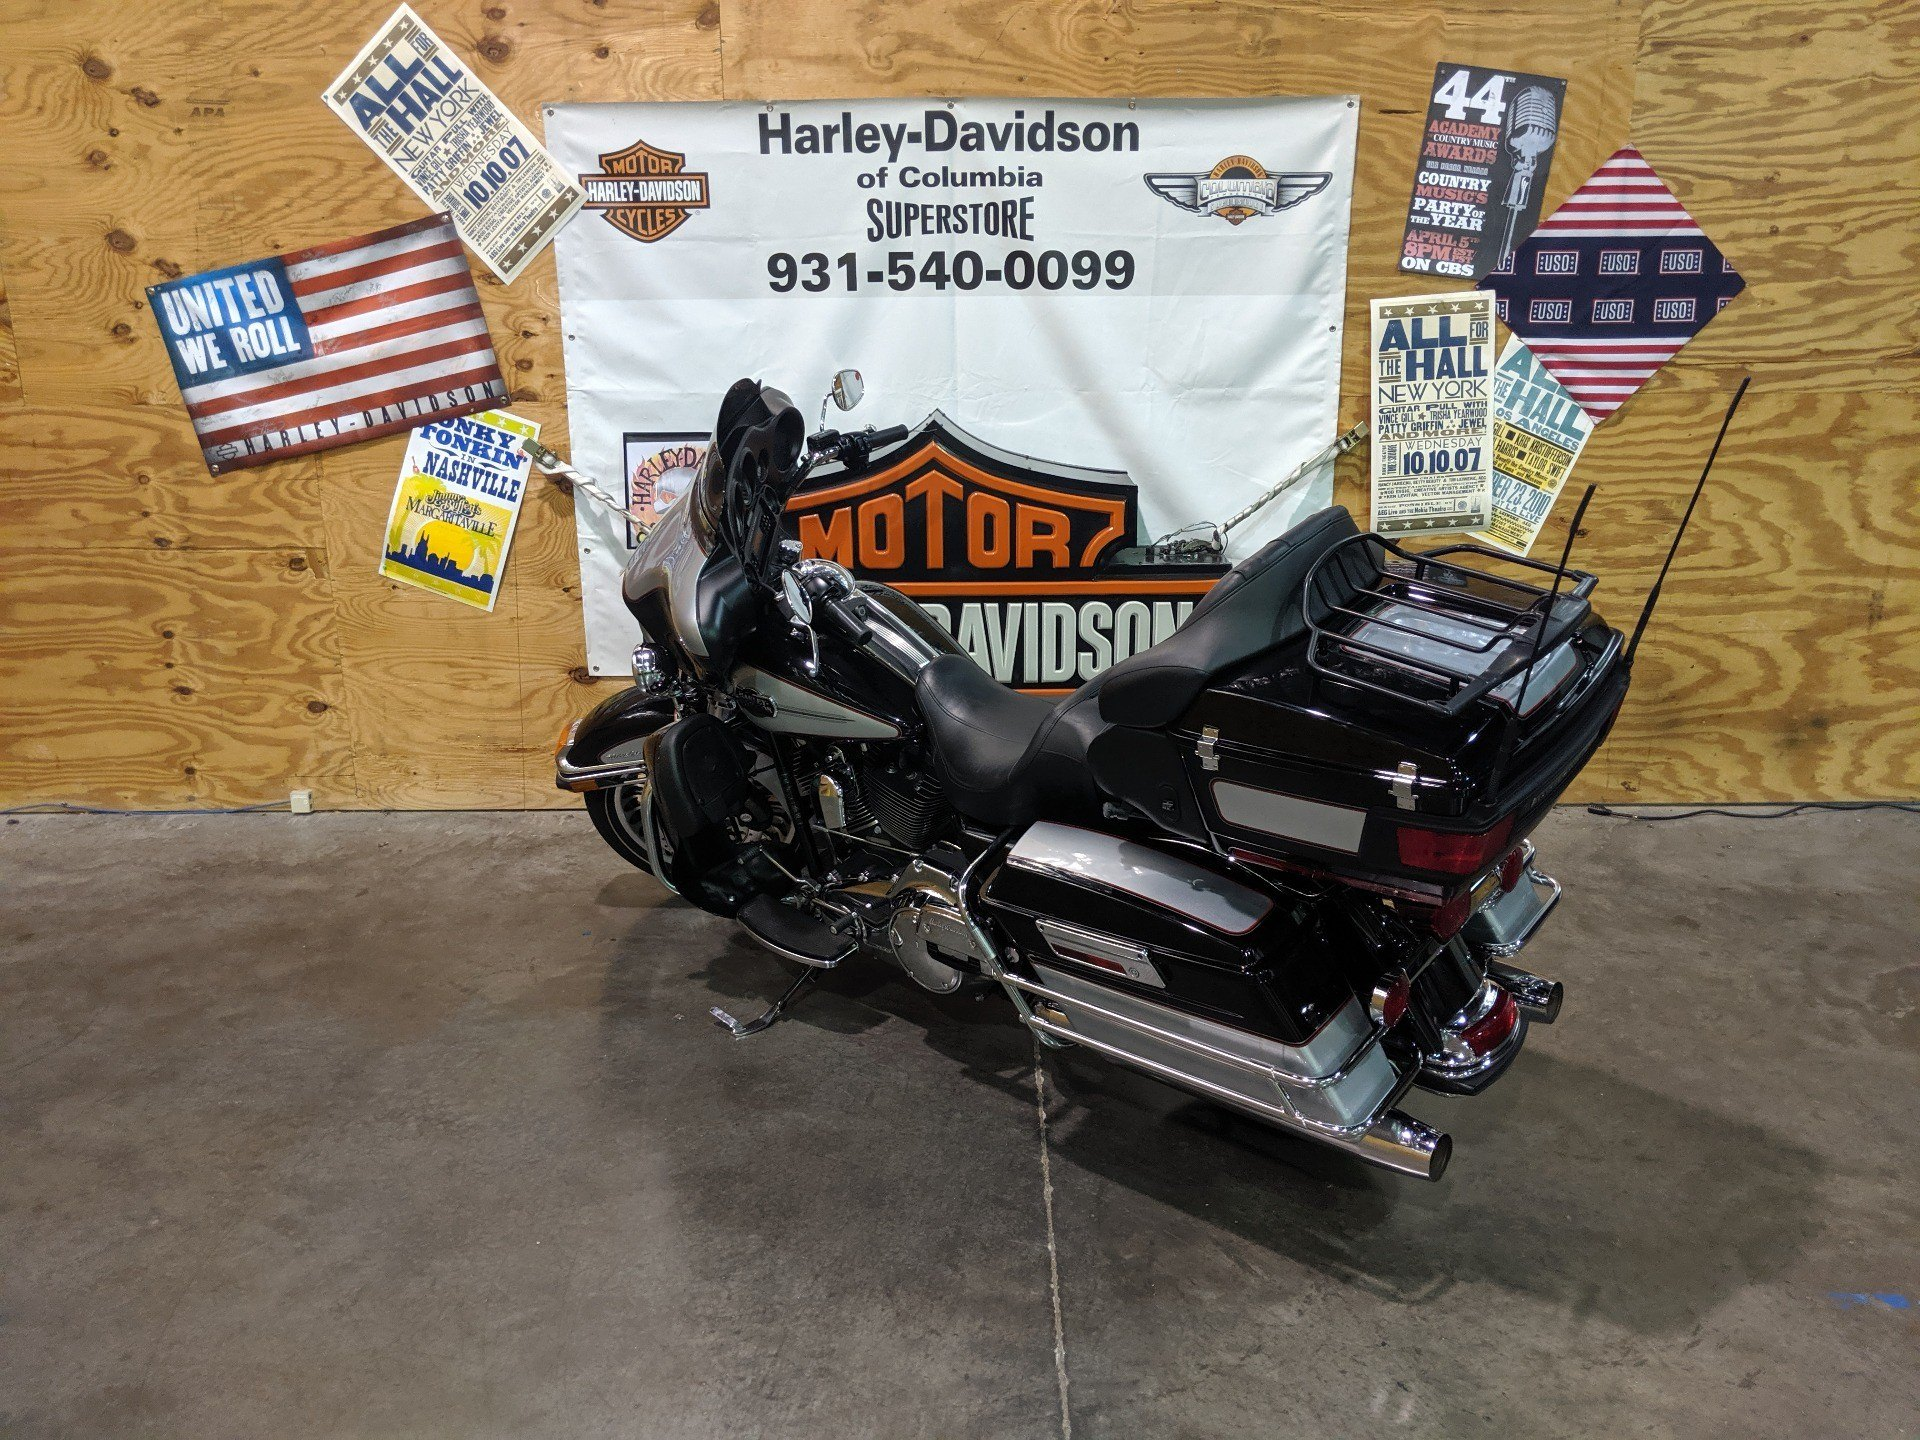 2010 Harley-Davidson FLHTCU in Columbia, Tennessee - Photo 6